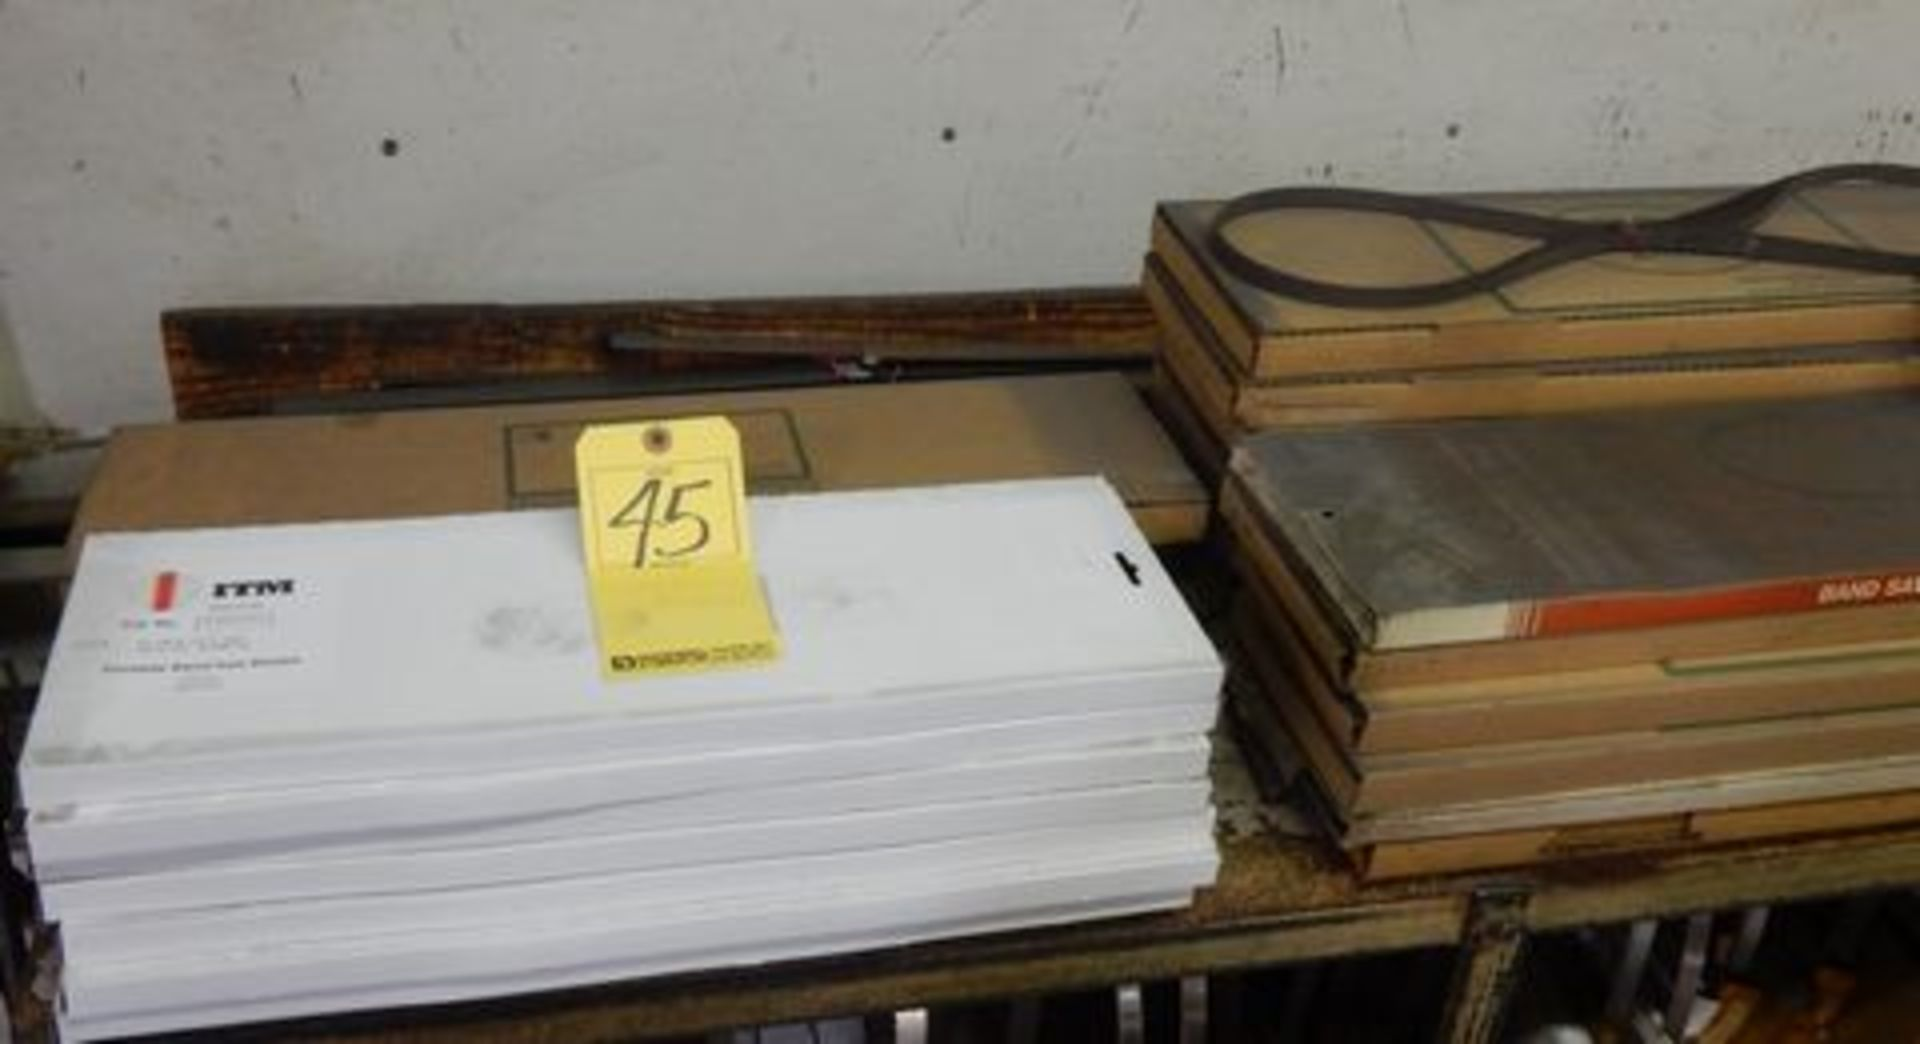 Lot 45 - LOT MISC. PORT. BAND SAW BLADES